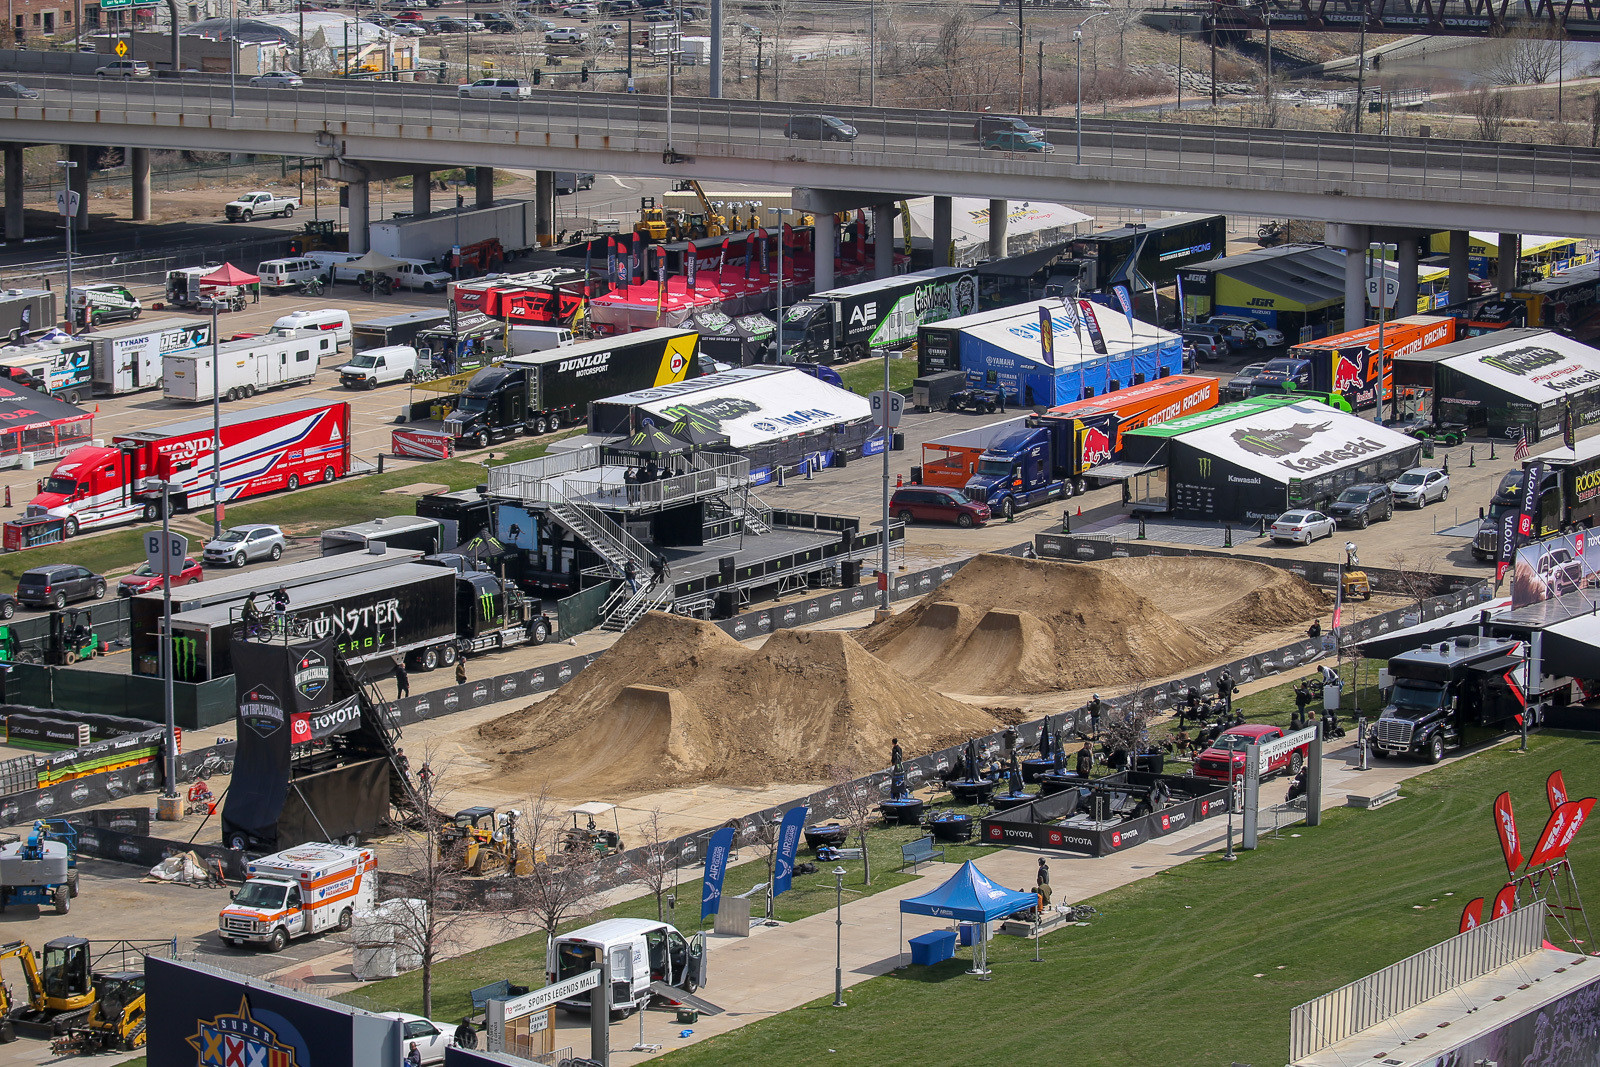 The Toyota BMX Triple Challenge was set to go off in the pits.